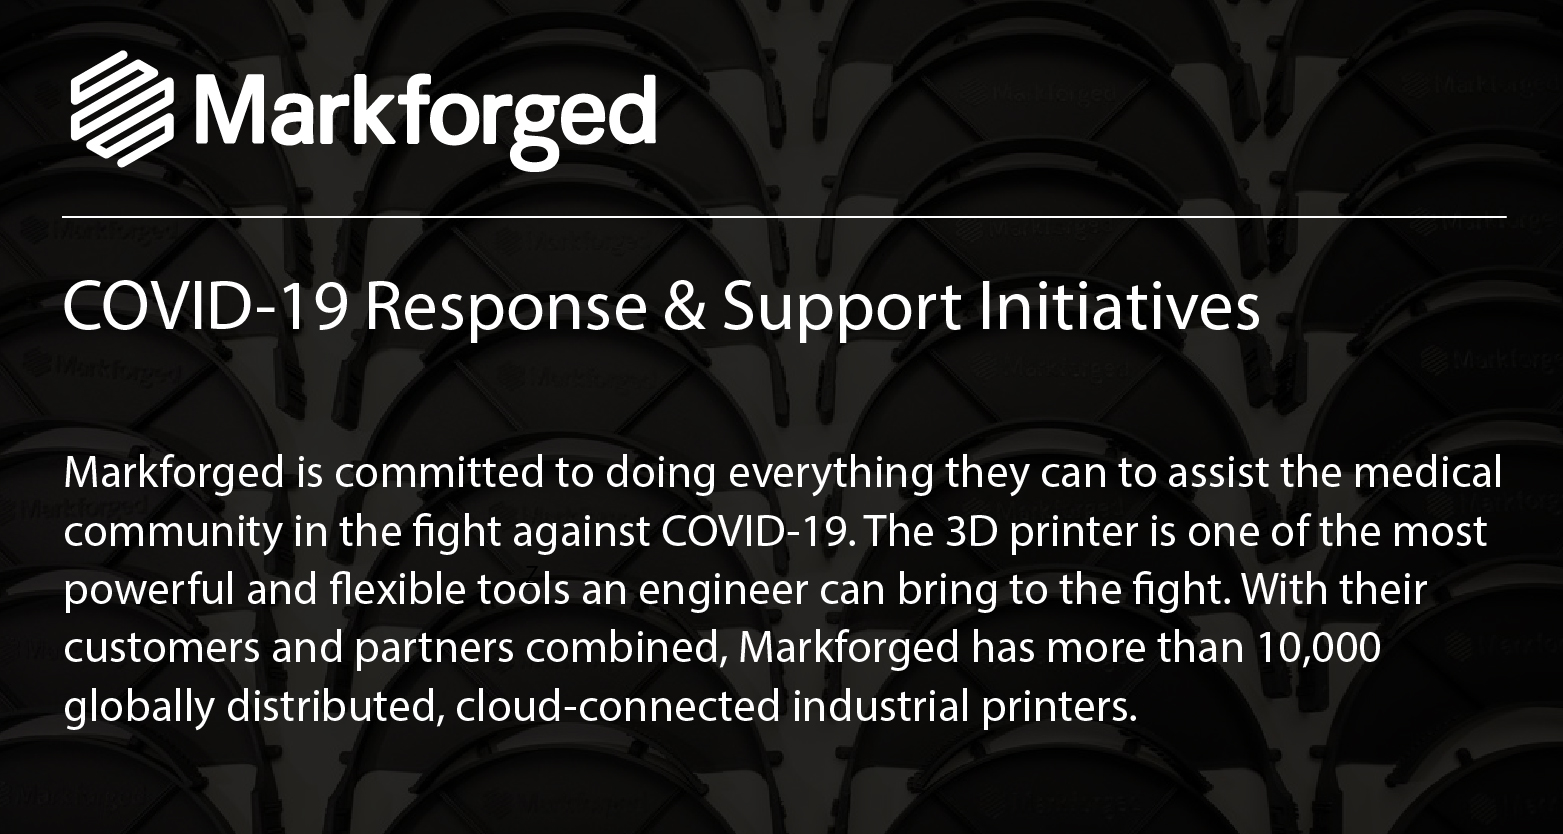 Markforged COVID-19 Response Banner Image